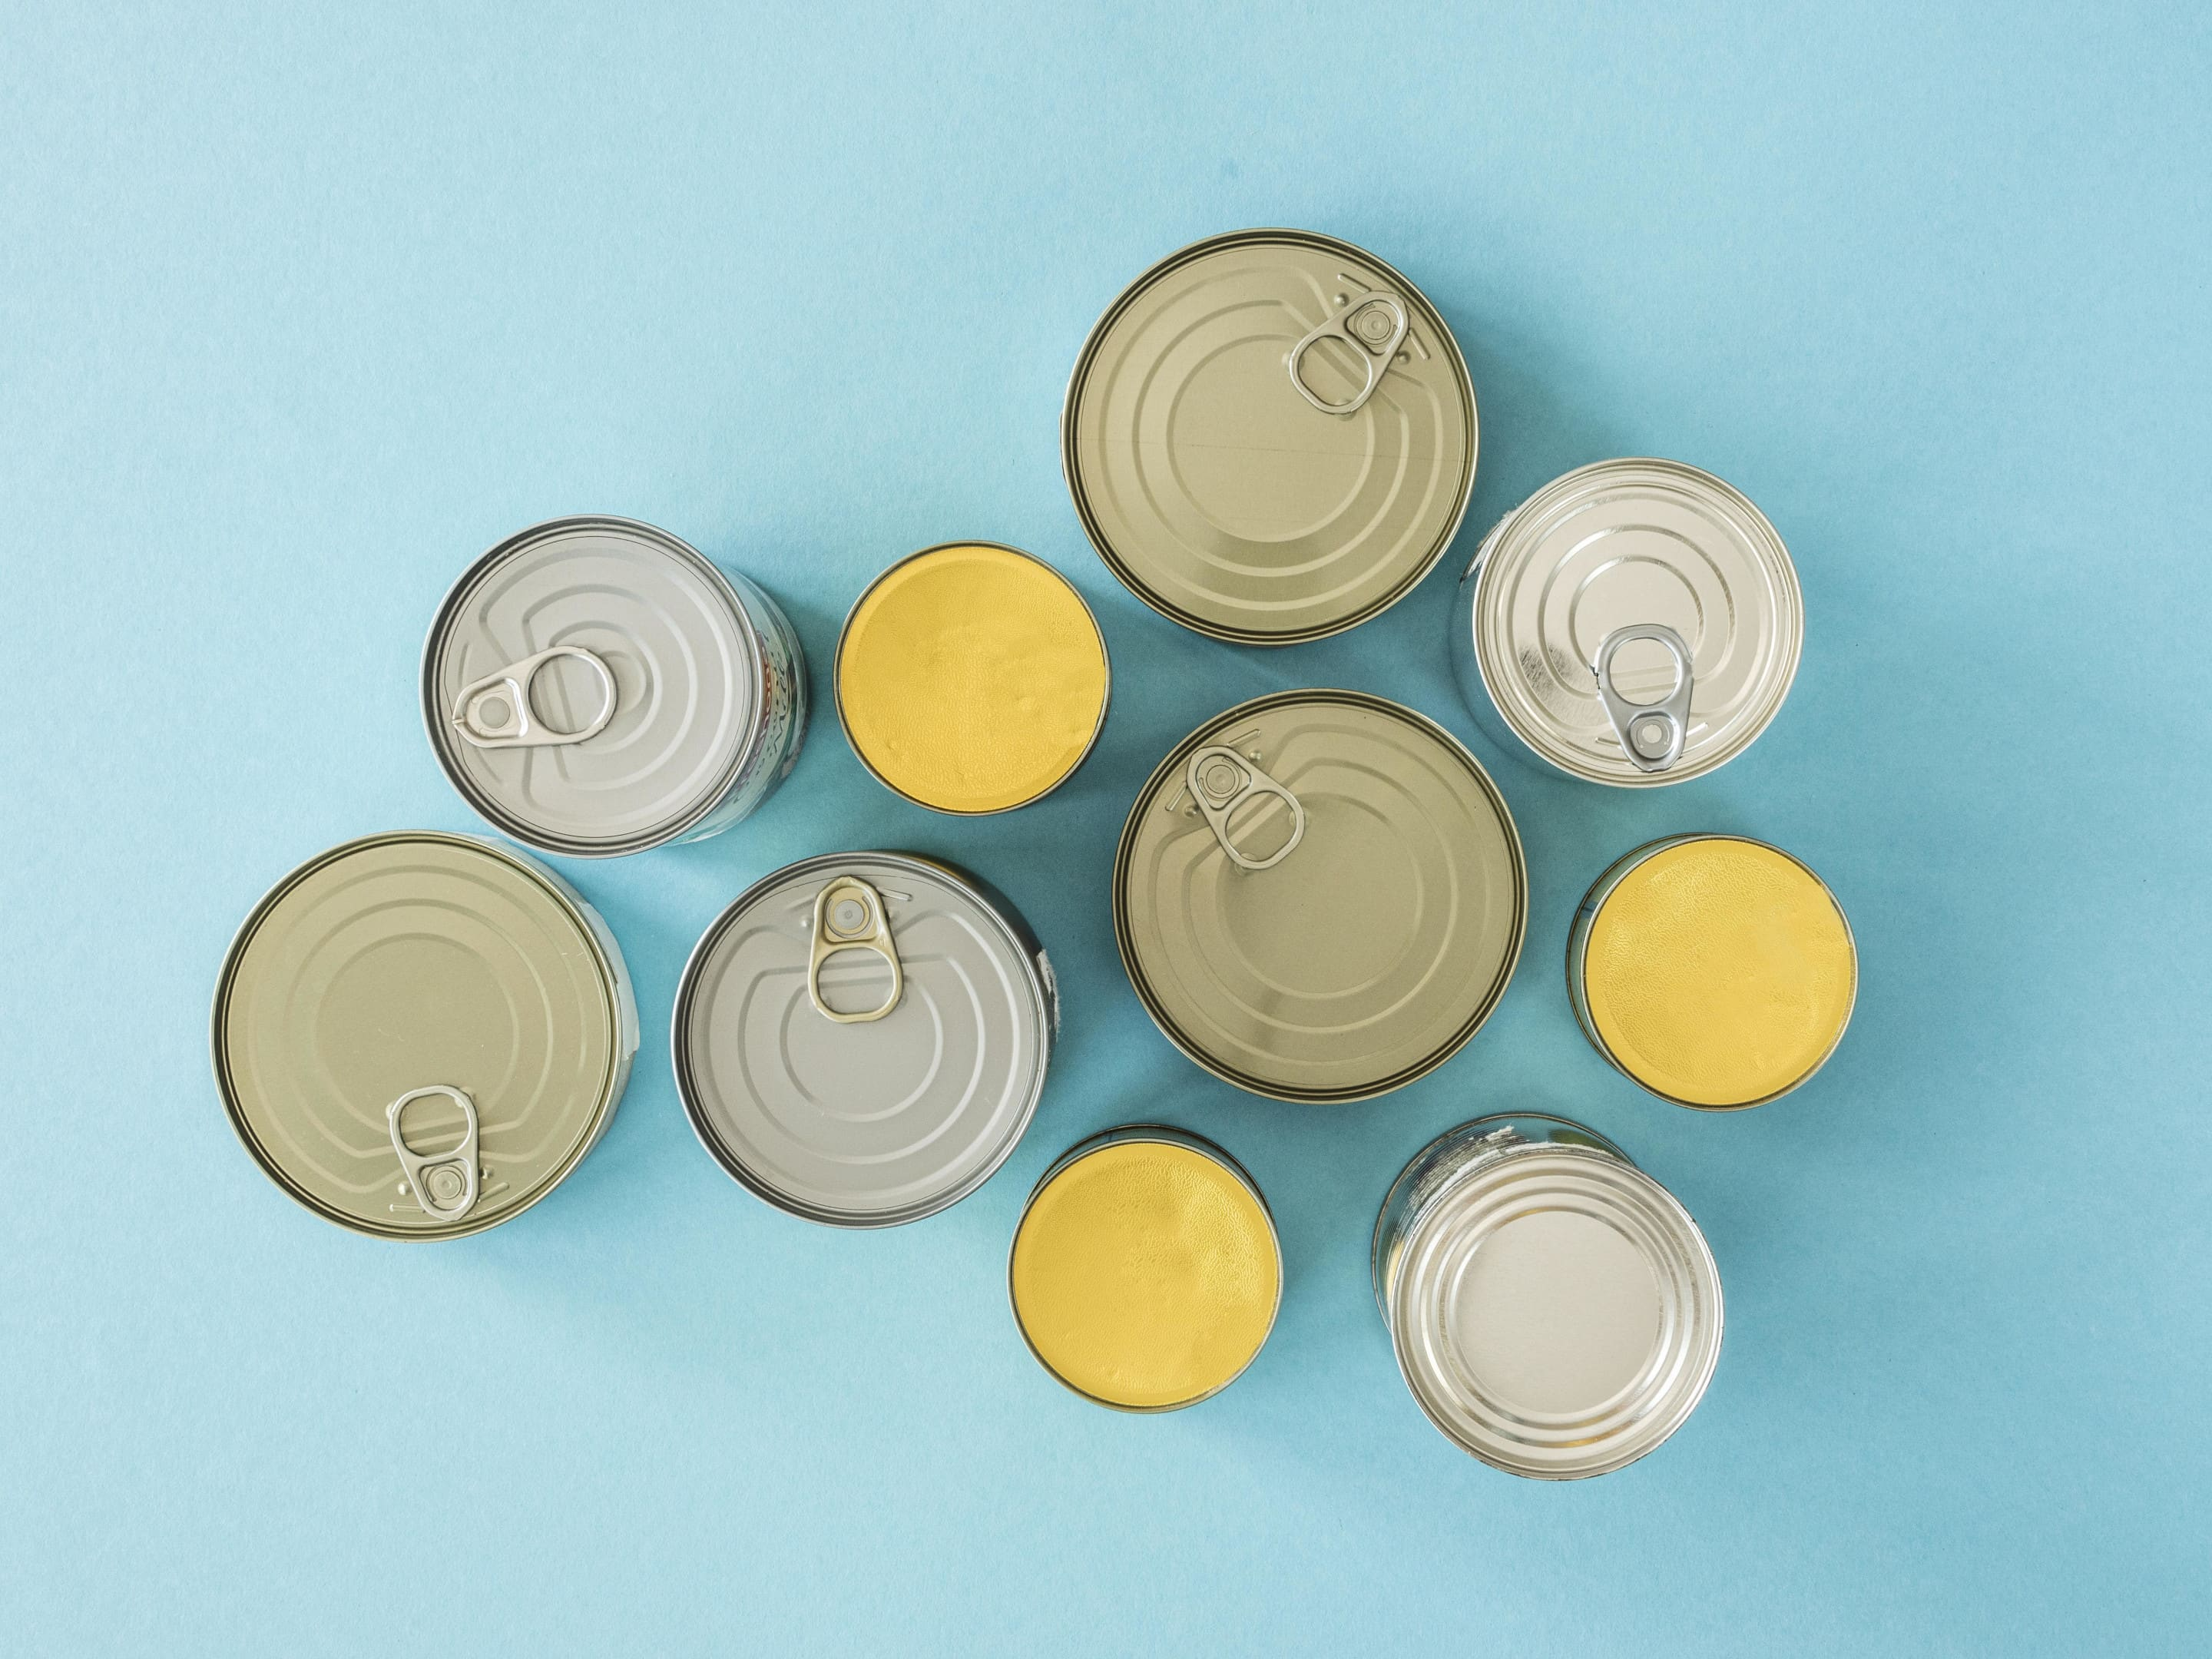 Top view of canned food on blue background